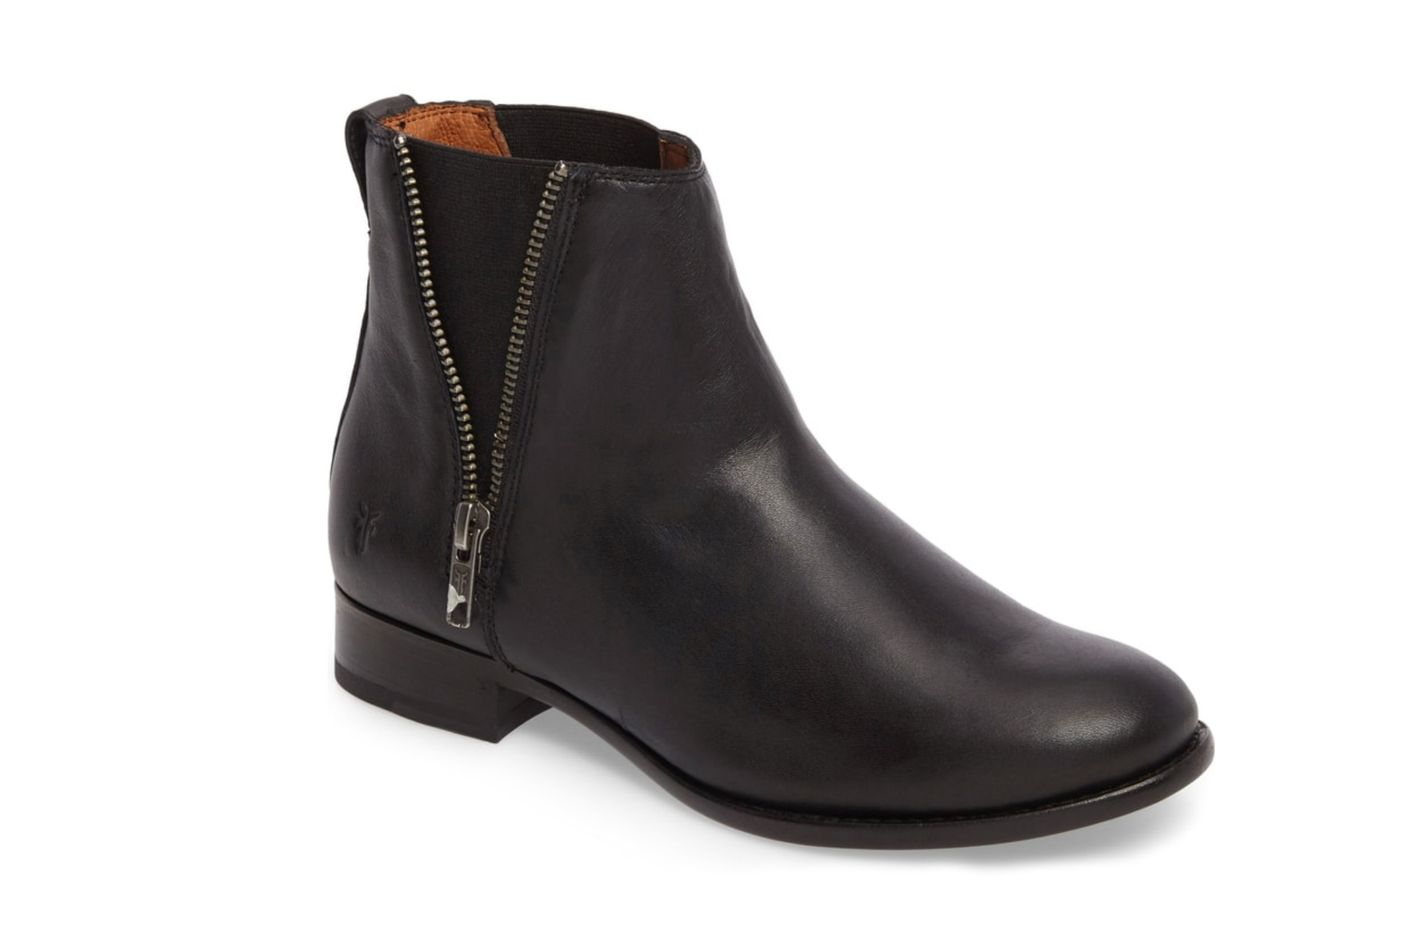 Frye Carly Chelsea Boot